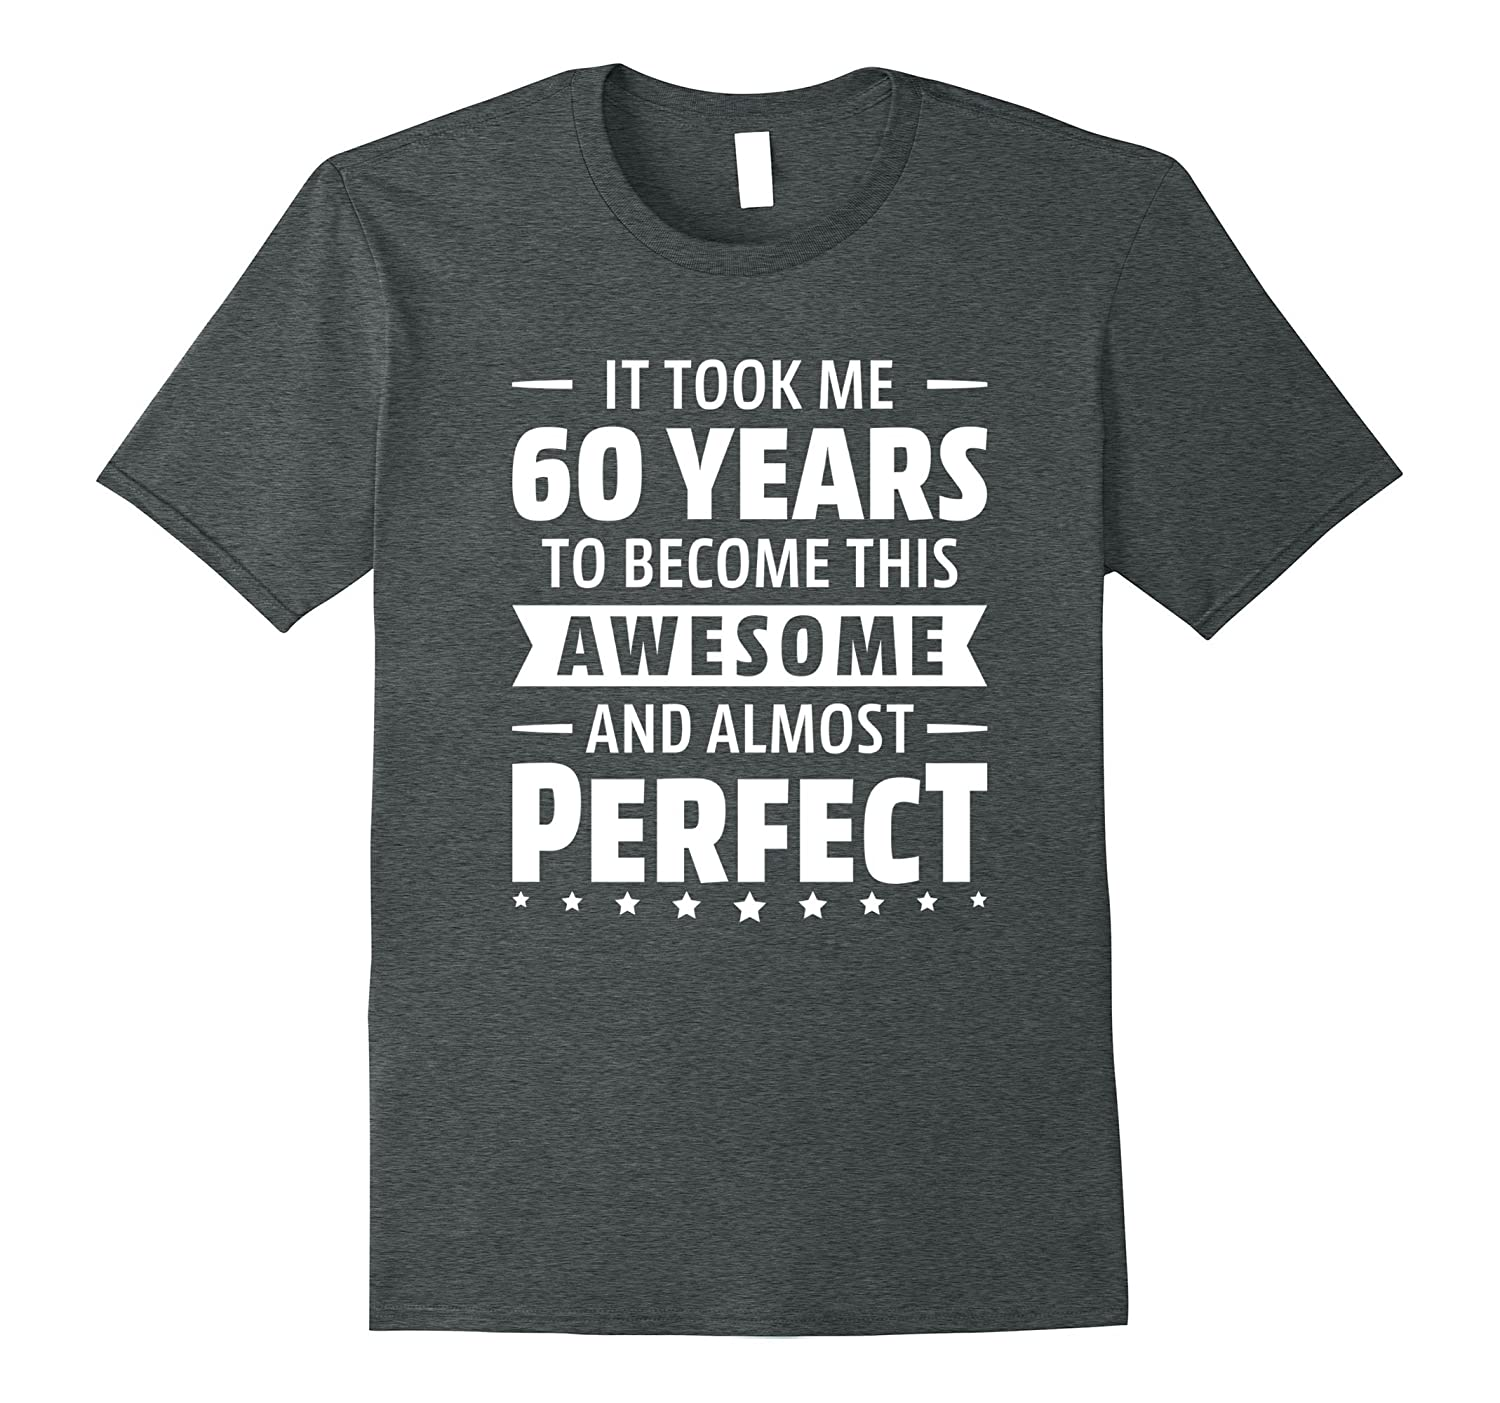 17343d46a 60 Years To Become Awesome 60th Birthday Gift Ideas 1957 Tee-PL ...